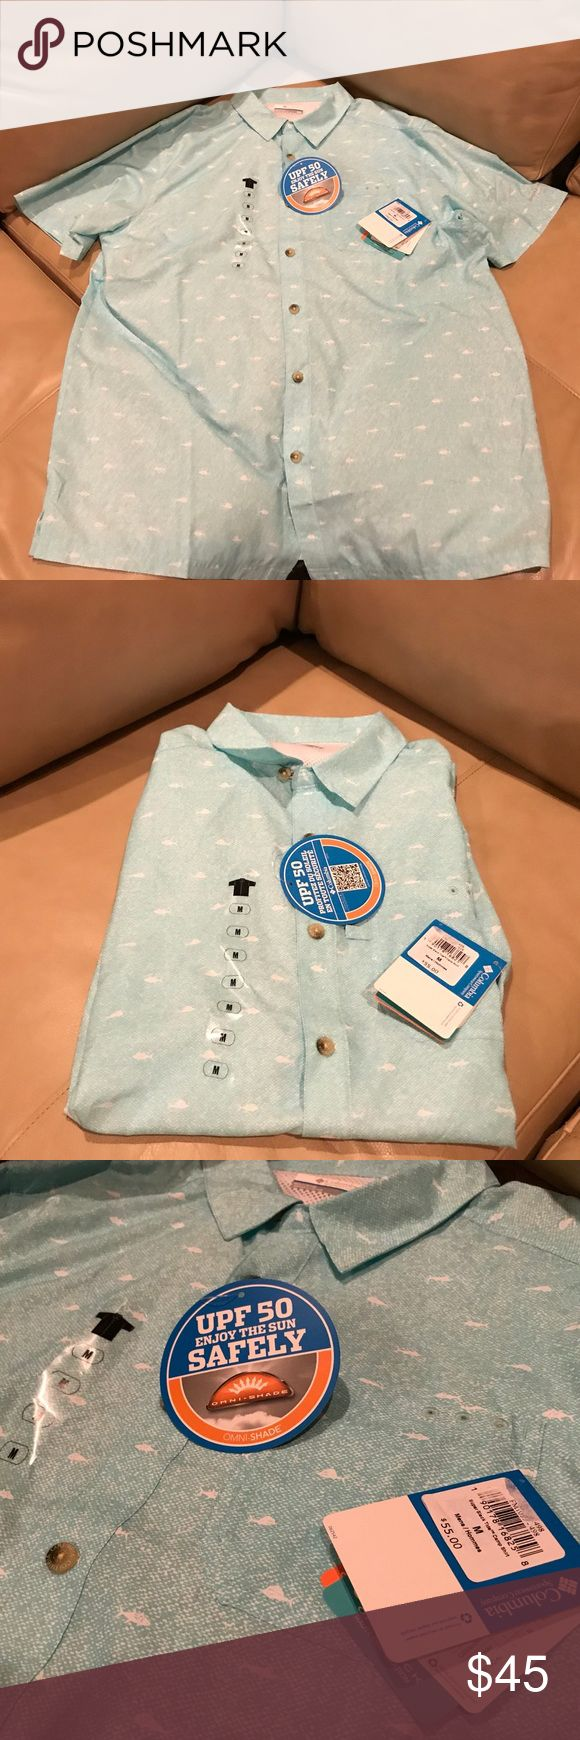 Men's Columbia PFG Shirt New with tags. Fish freely, protected from the sun with 50 UPF. Size medium. Color is baby blue greenish. Look stylish fishing! Columbia Shirts Casual Button Down Shirts